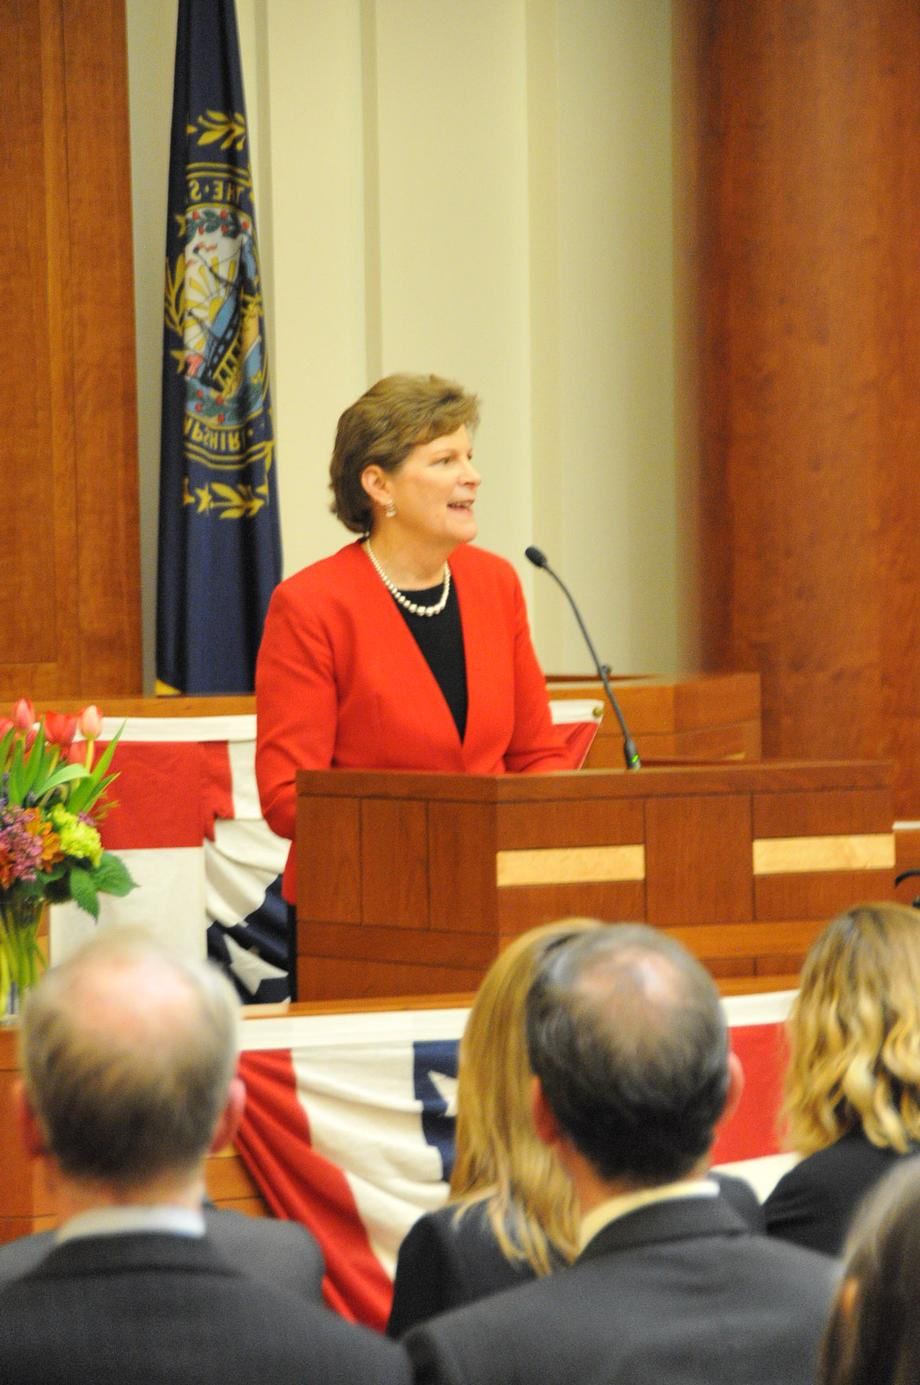 Senator Shaheen offered remarks at the official swearing in ceremony for Emily Gray Rice to serve as U.S. Attorney for the District of New Hampshire in Concord. Rice replaces former New Hampshire acting U.S. Attorney, Donald Feith. Last year, Shaheen wrote to President Obama in support of Rice's nomination. The Senate approved the nomination of Rice in December of last year.